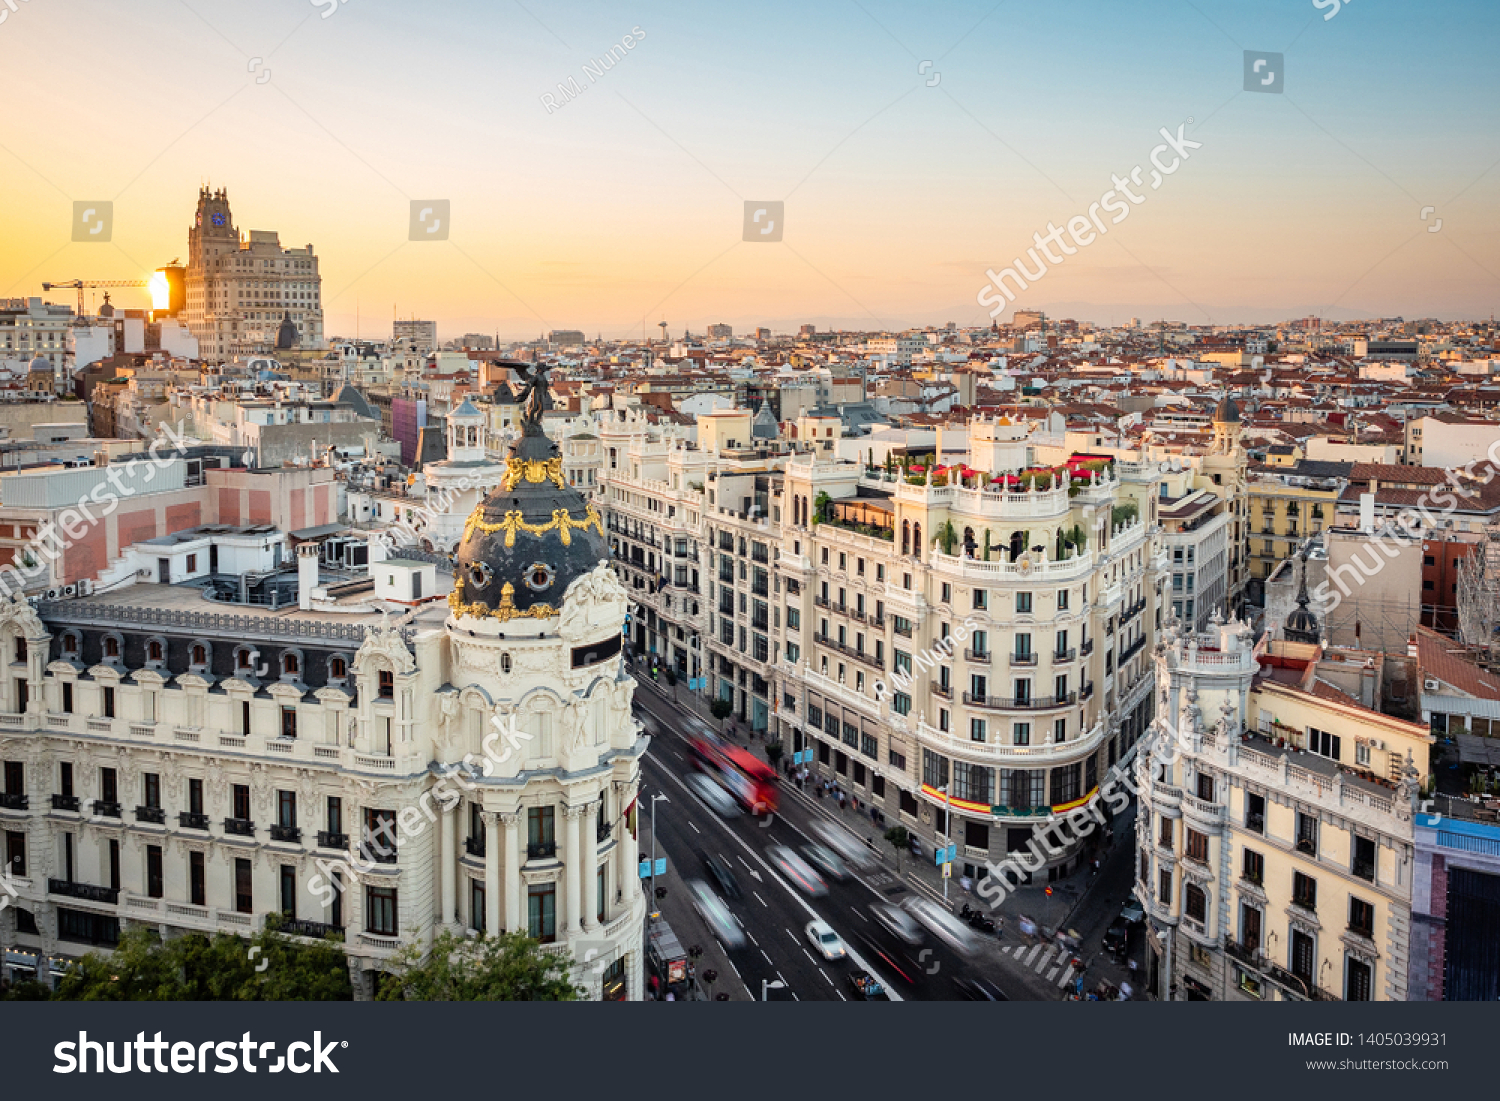 Madrid, Spain, sunset over landmark buildings on Gran Via street.  #1405039931